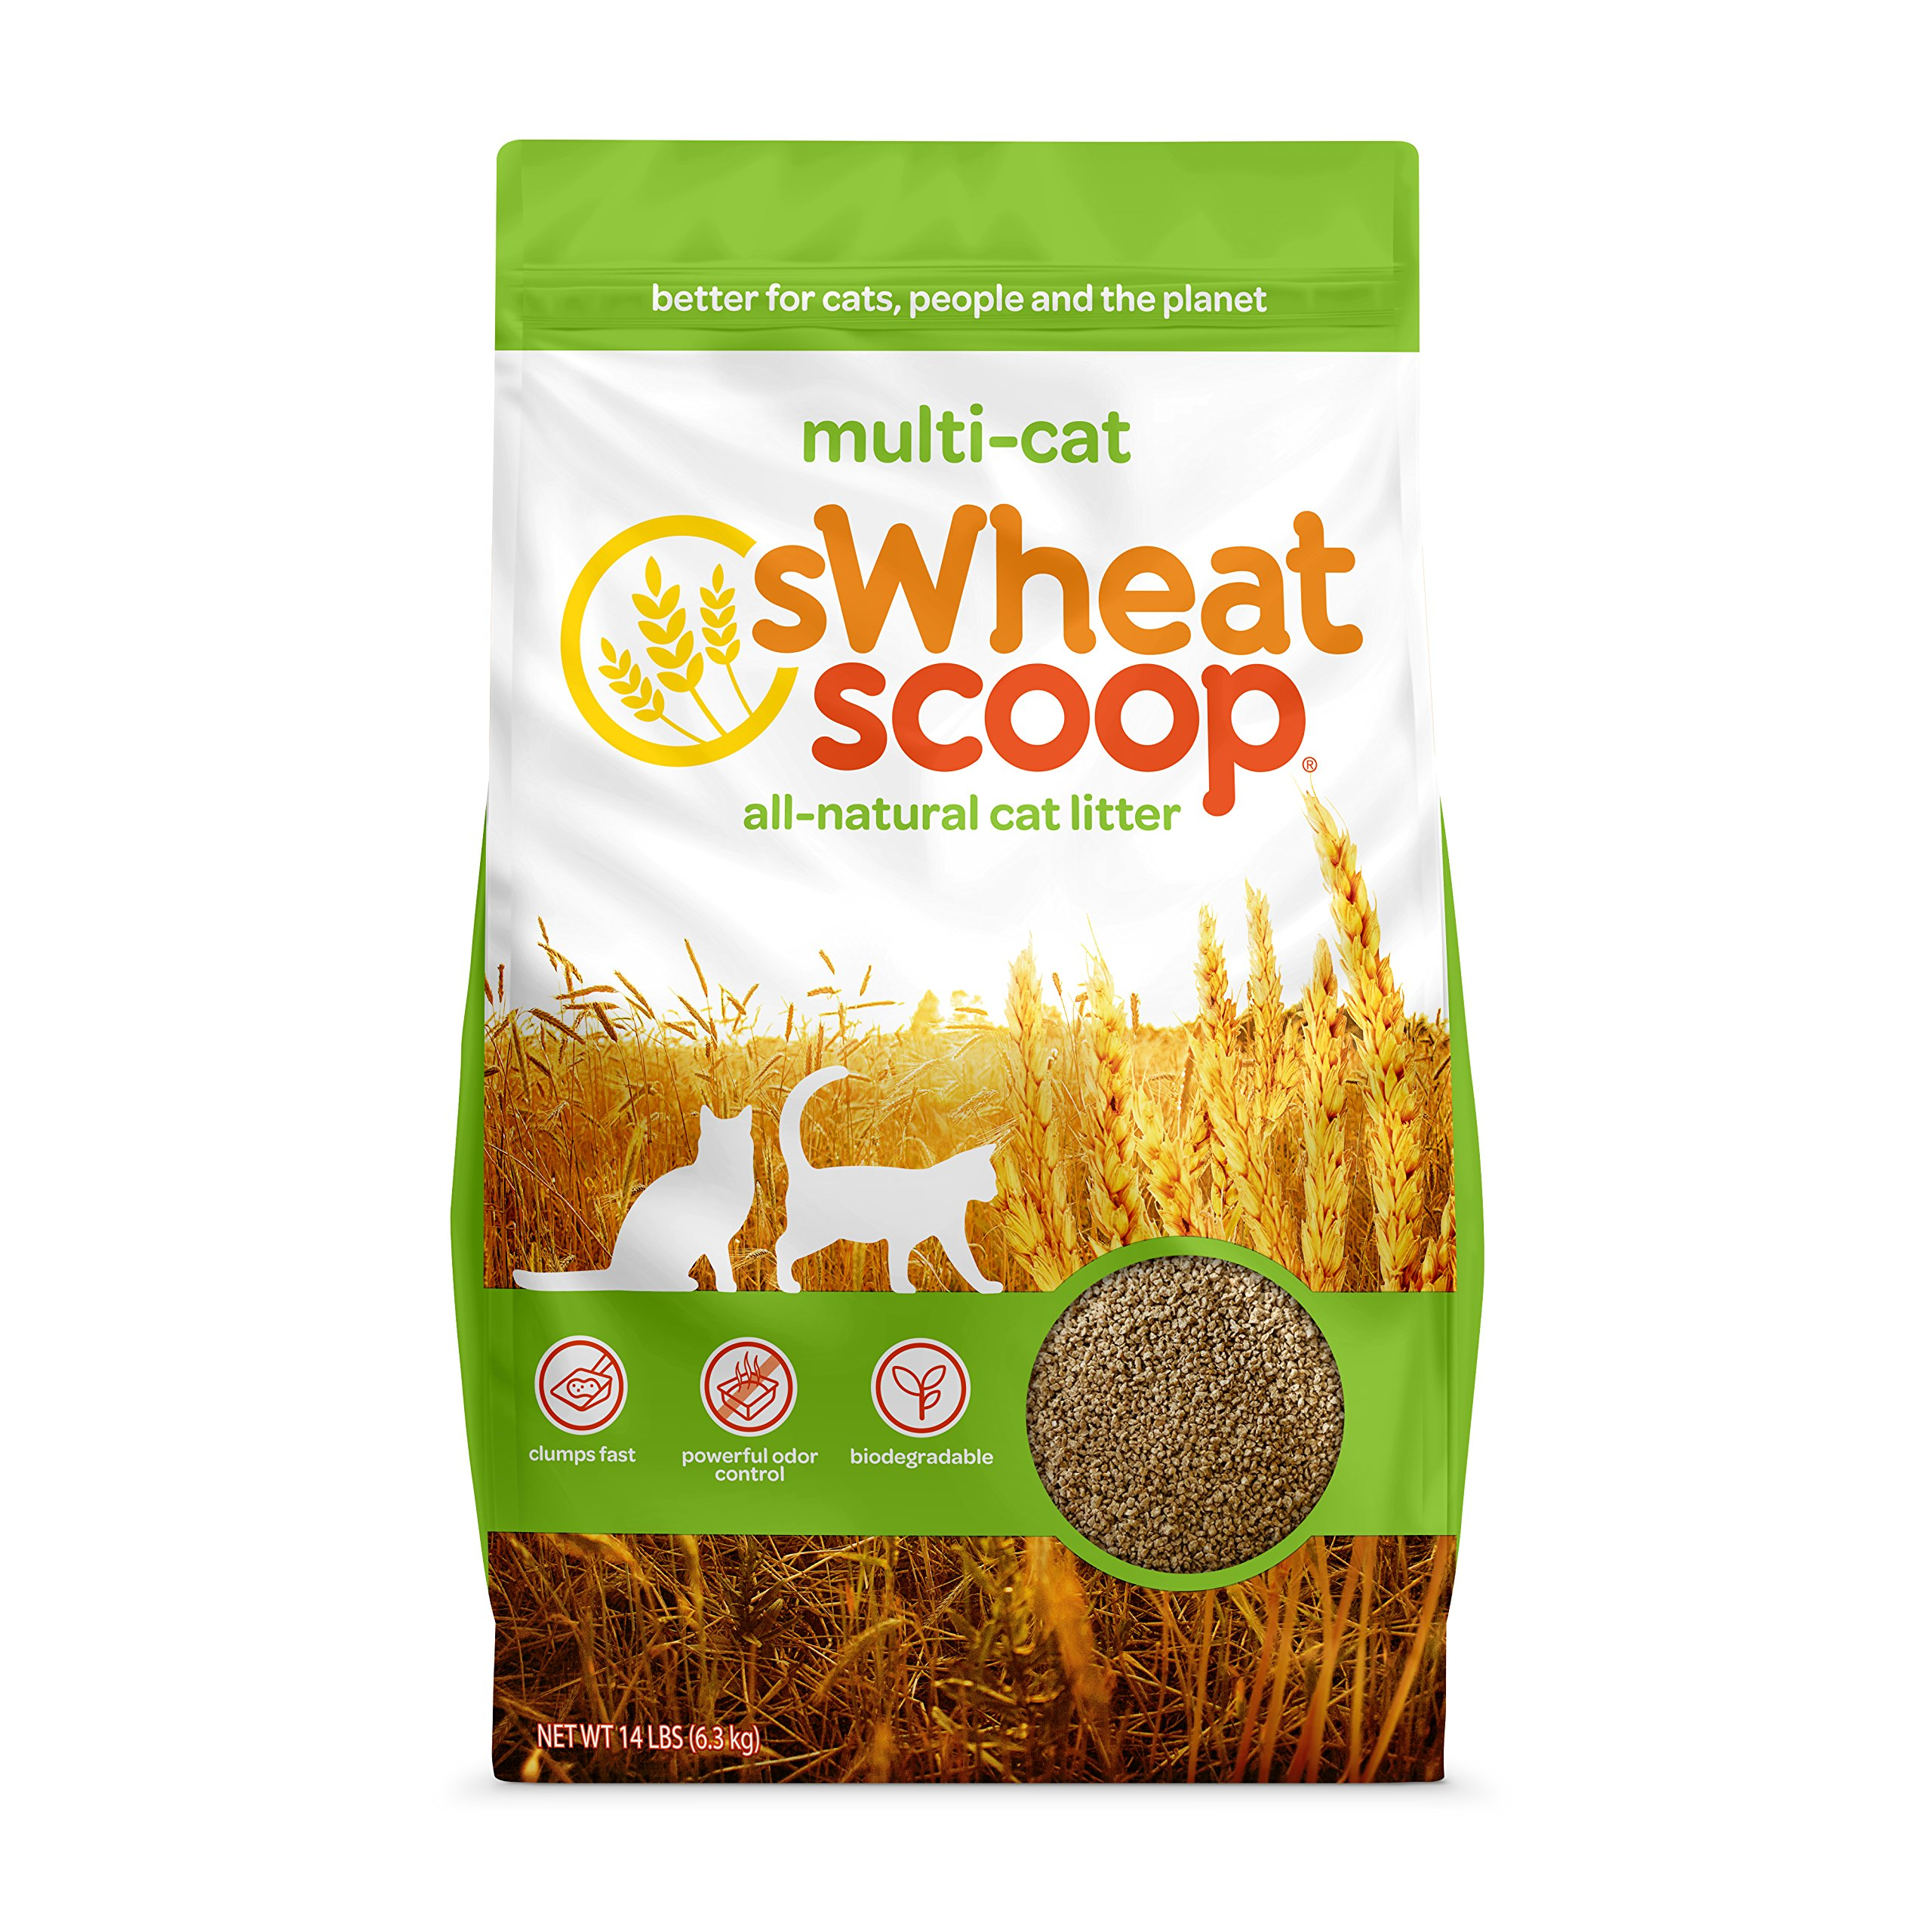 sWheat Scoop Multi-Cat All-Natural Clumping Cat Litter, 14lb Bag by sWheat Scoop